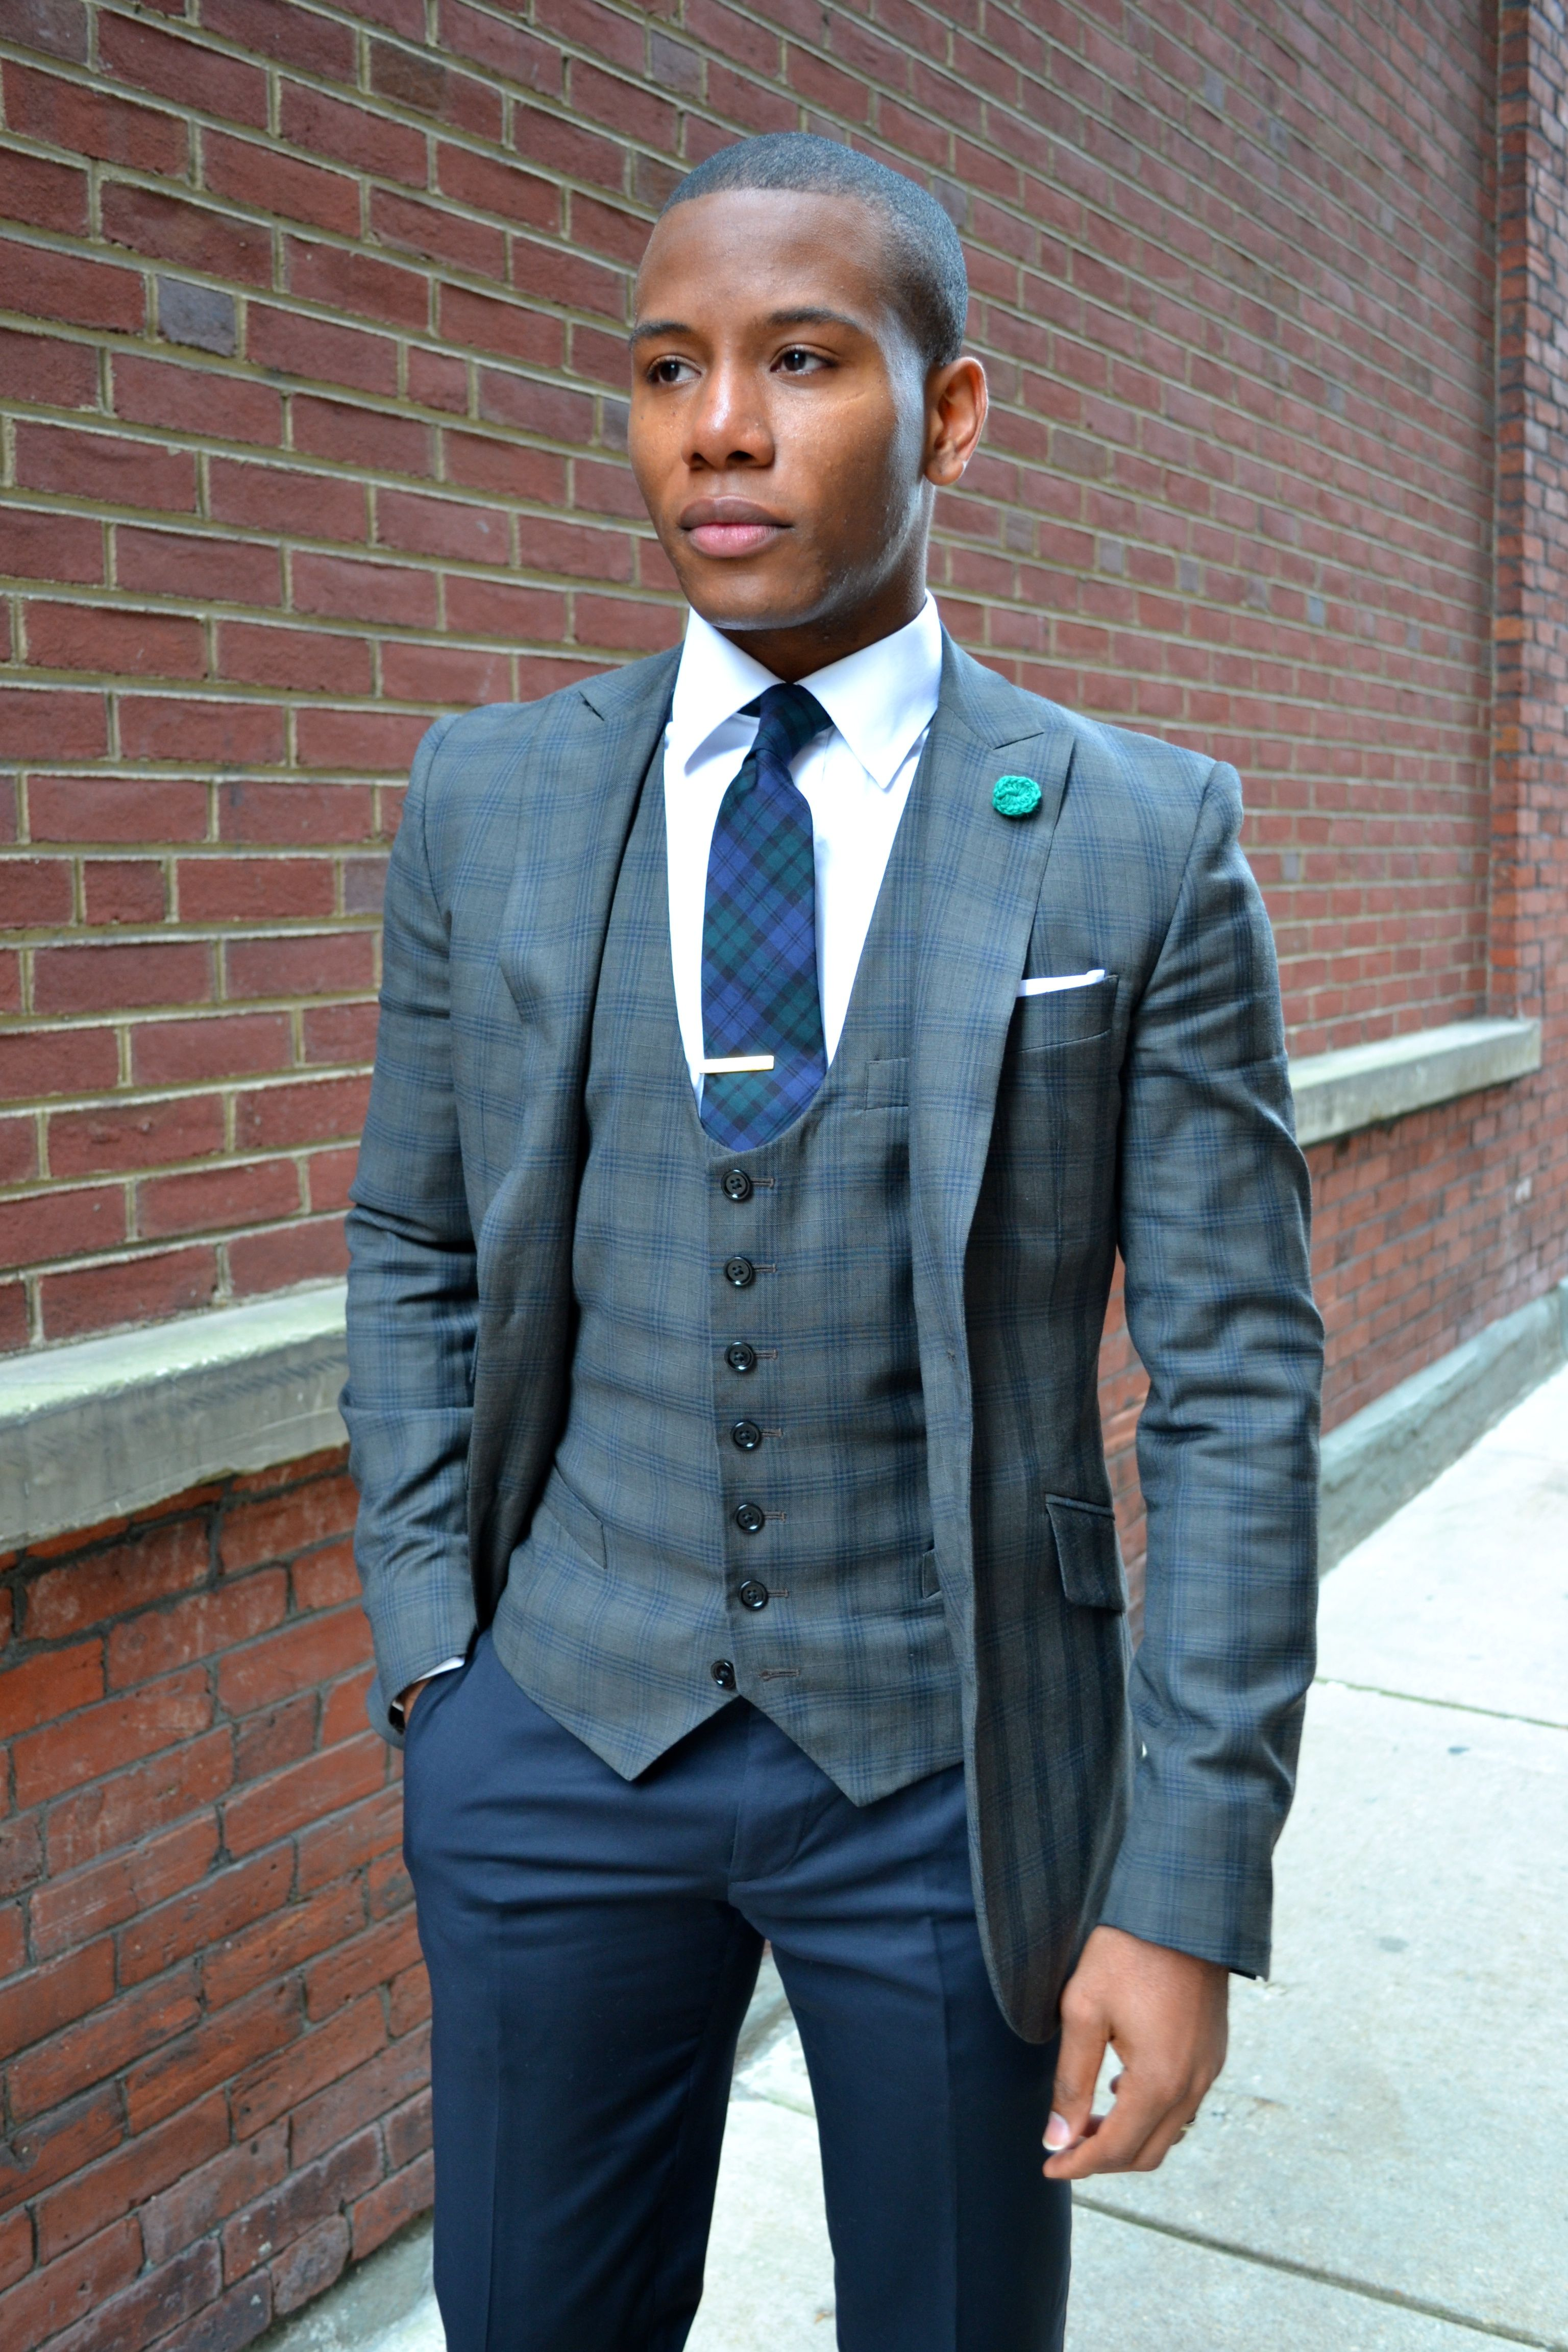 1000  images about Suits on Pinterest   Grey, Blazers and Black tie